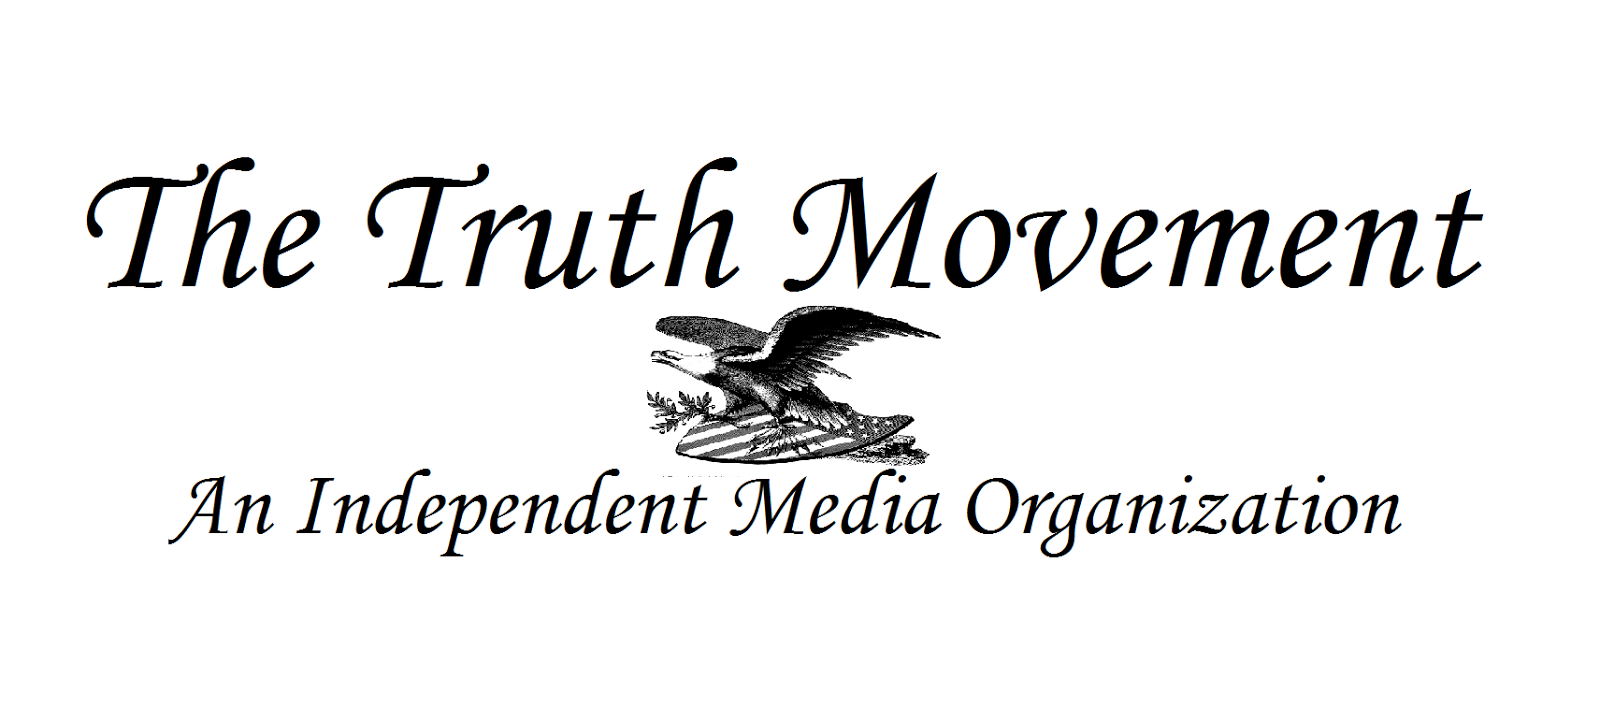 The Truth Movement